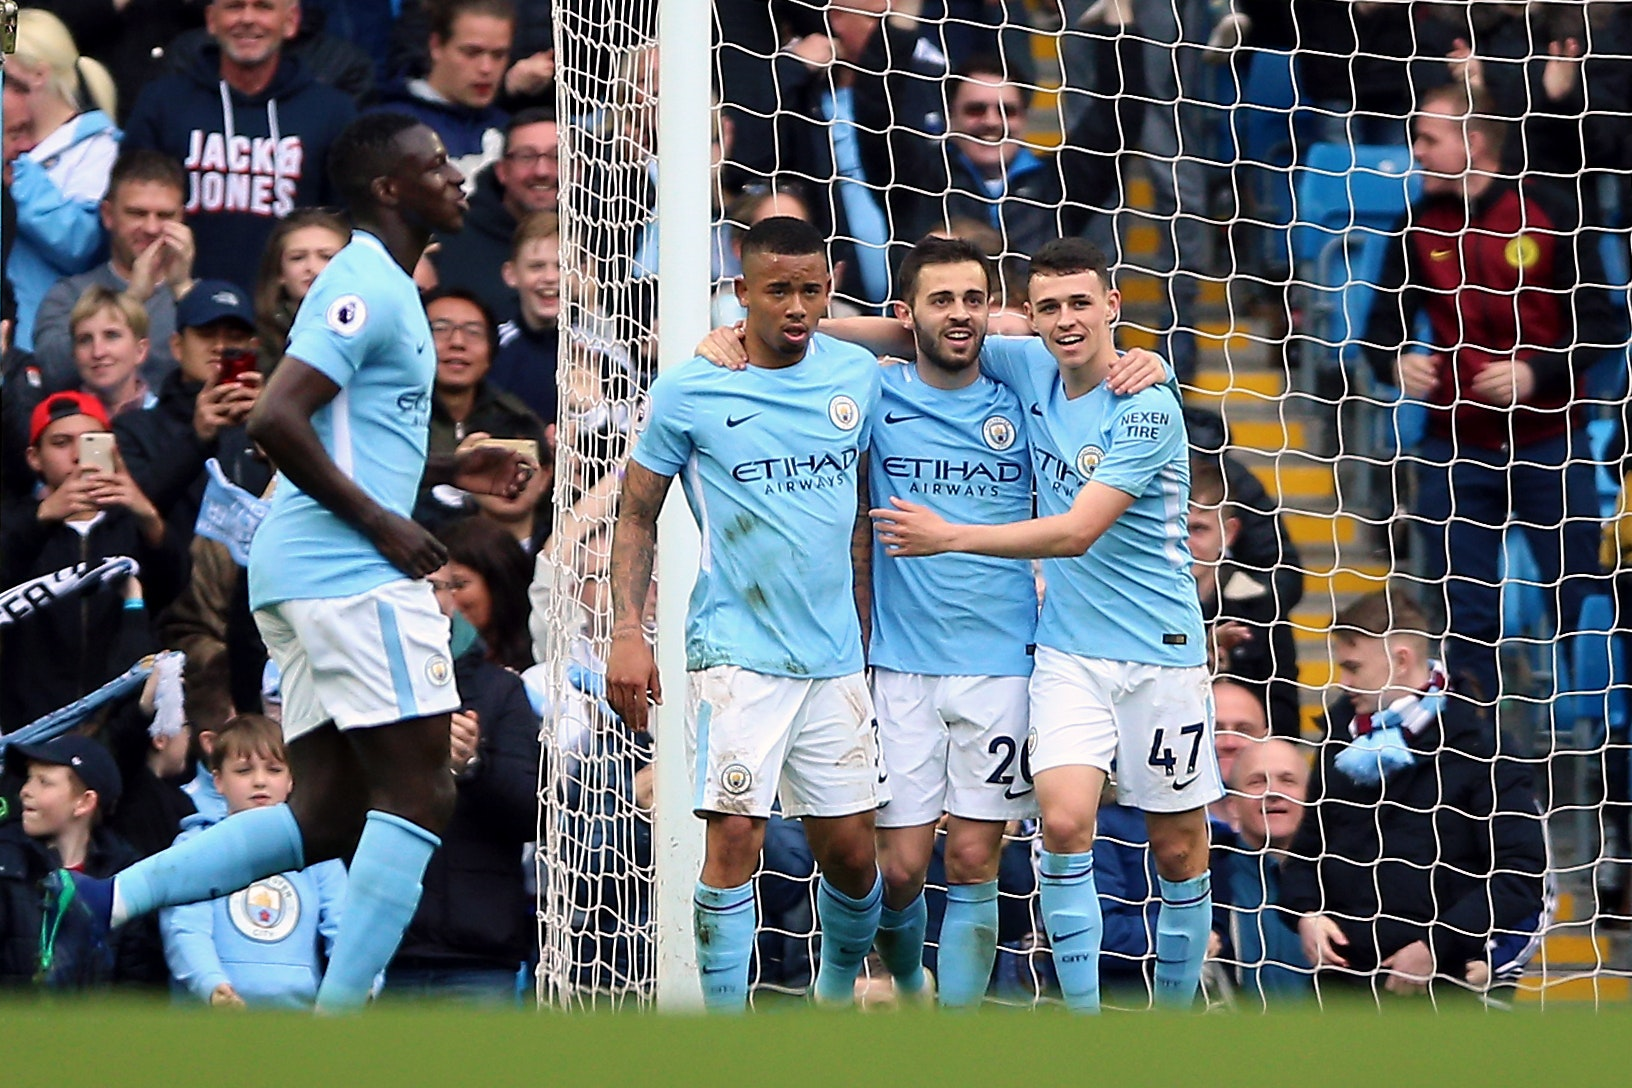 Gabriel Jesus celebrates scoring Manchester City's fifth goal (Nigel French/PA)